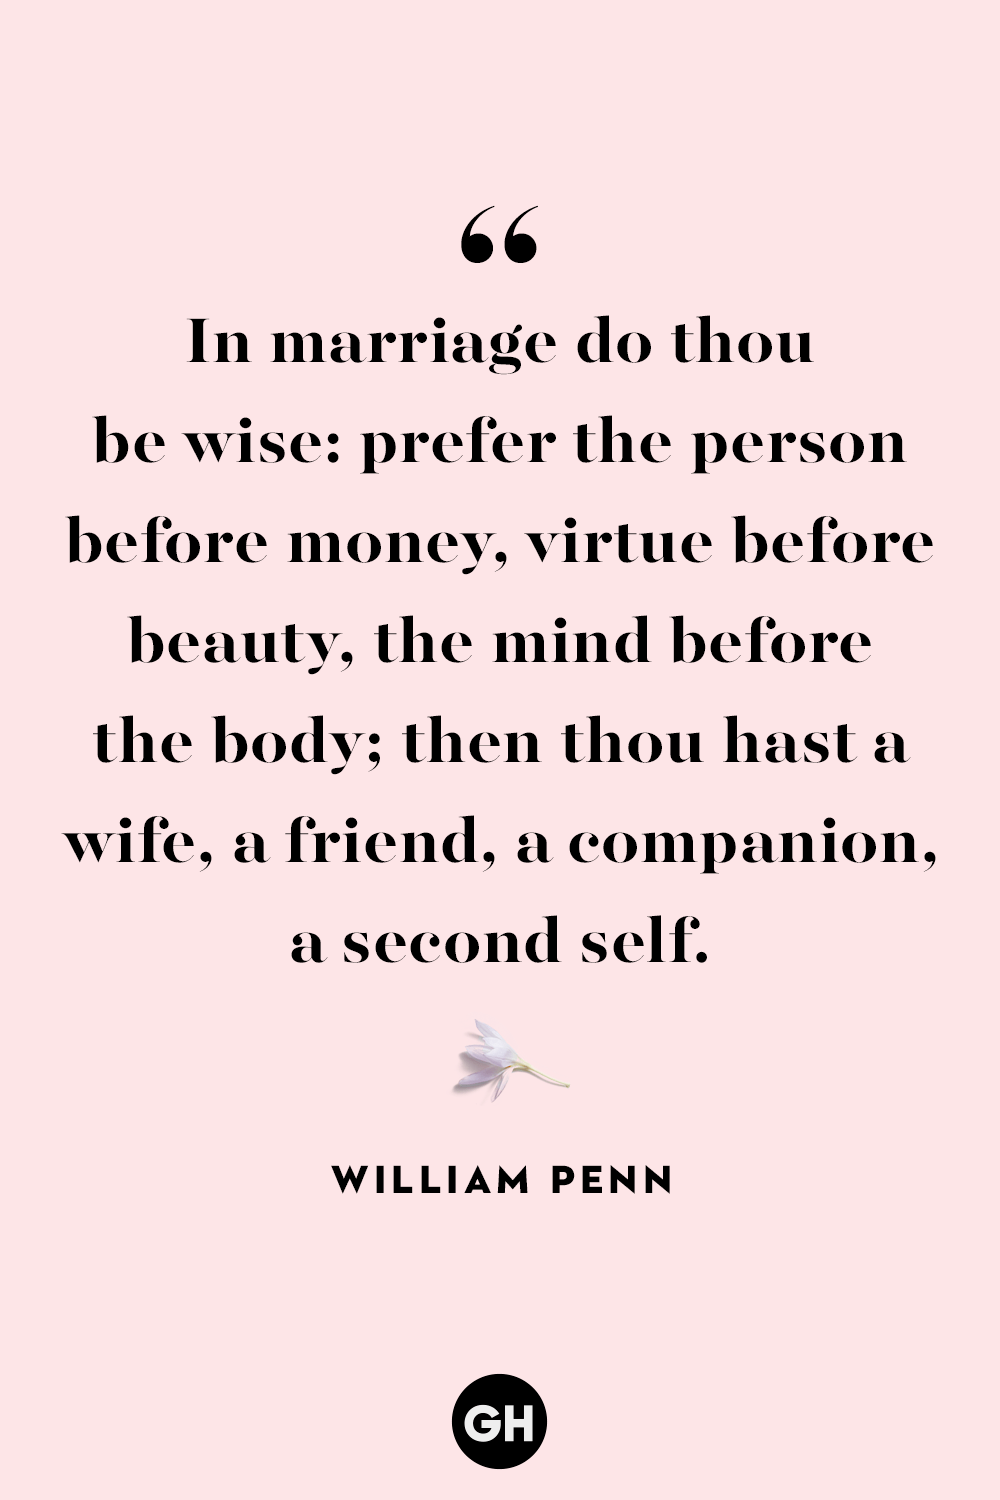 Funny Wife Quotes : funny, quotes, Funny,, Happy, Marriage, Quotes, Inspirational, Words, About